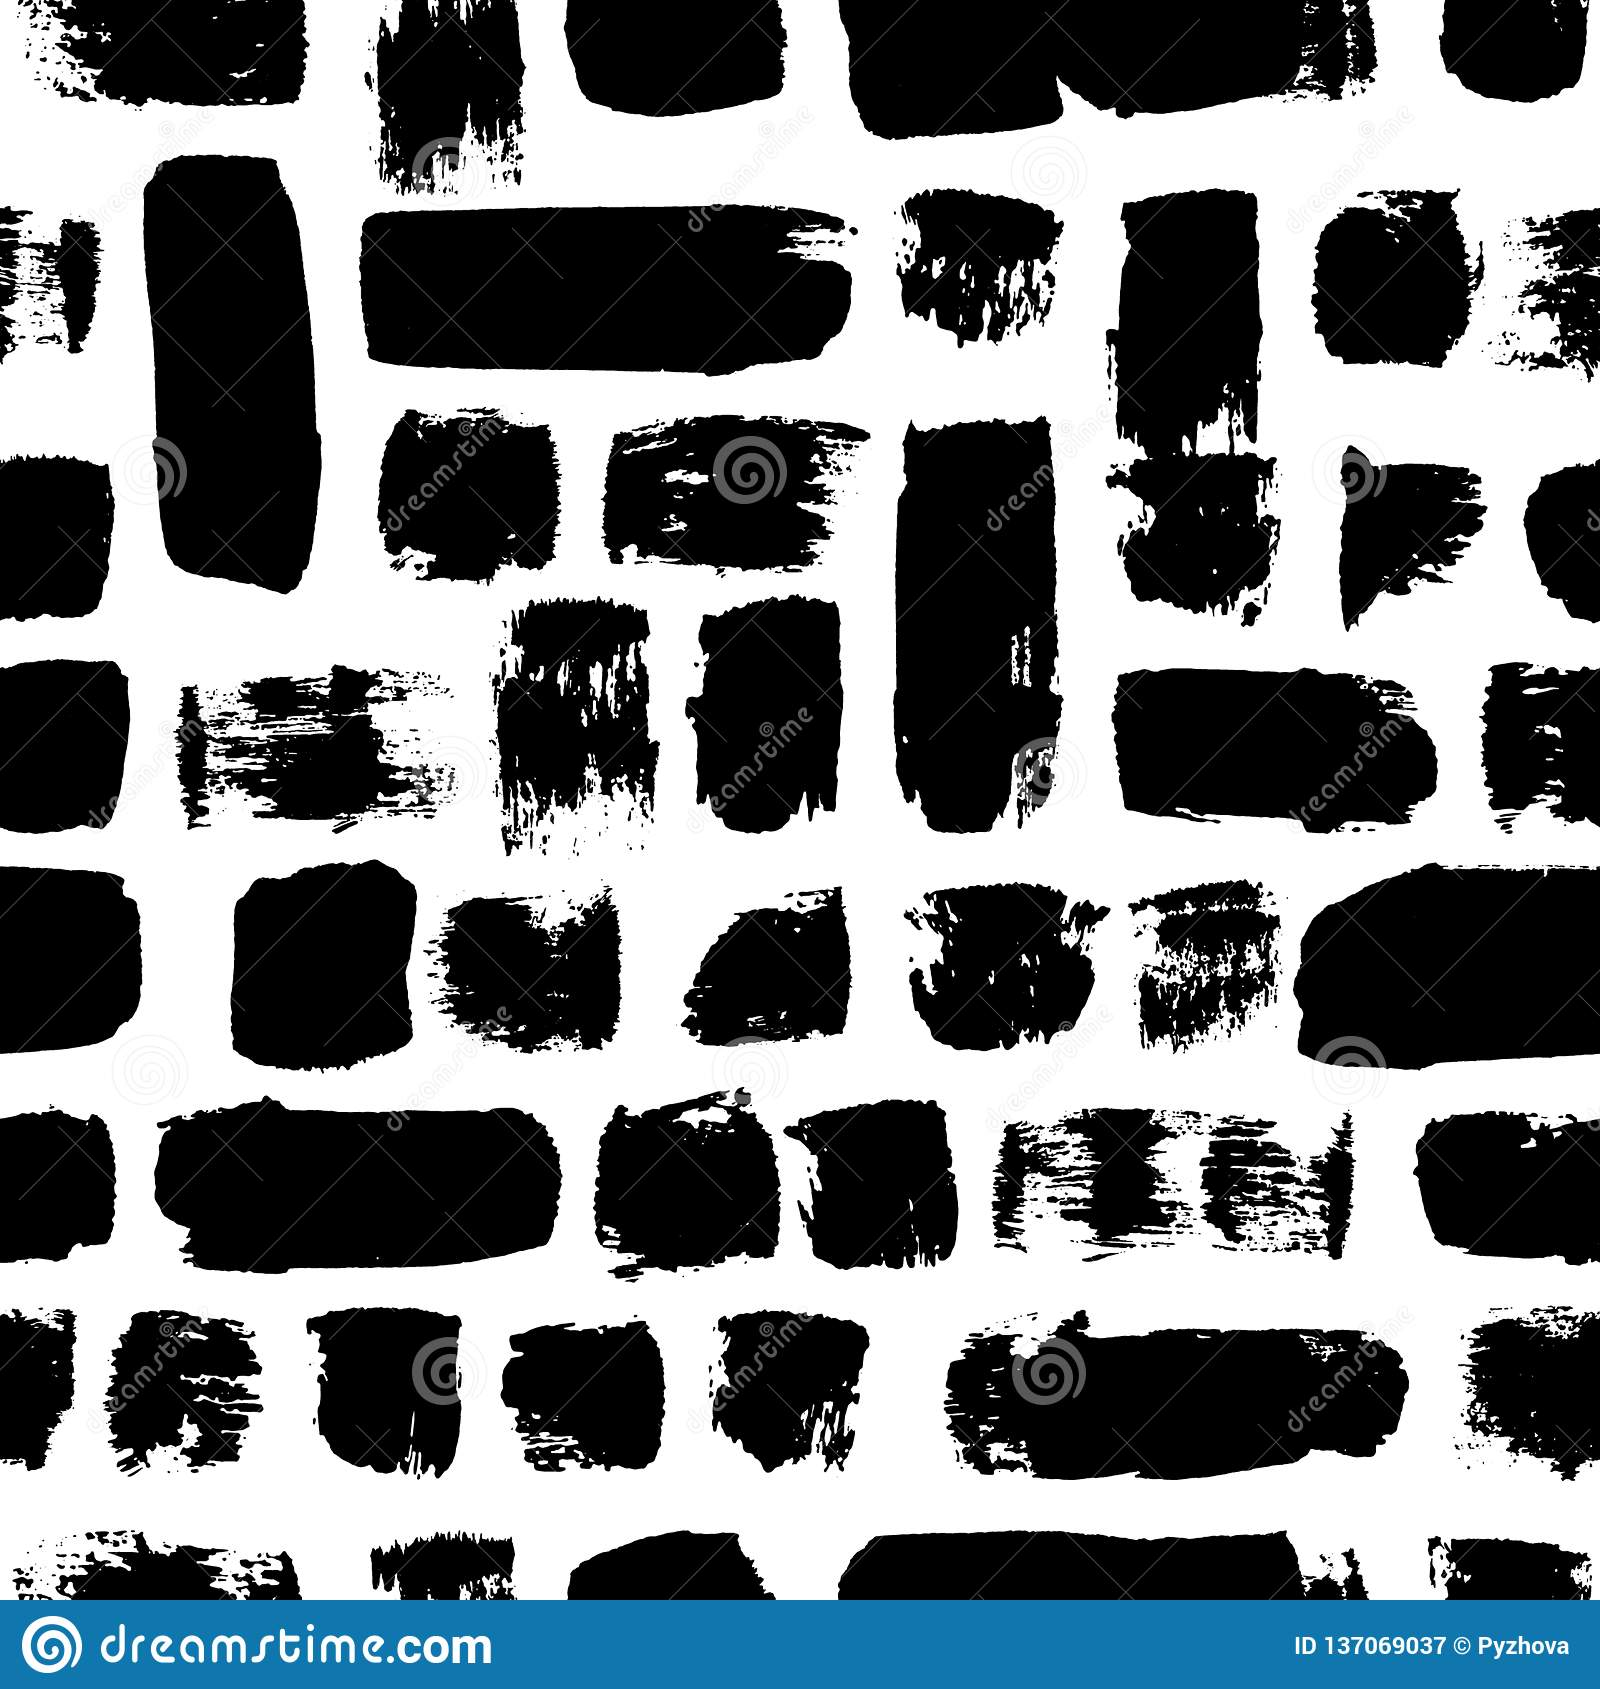 Vector seamless pattern. Black and white painted watercolor strips. Hand drawn texture elements.